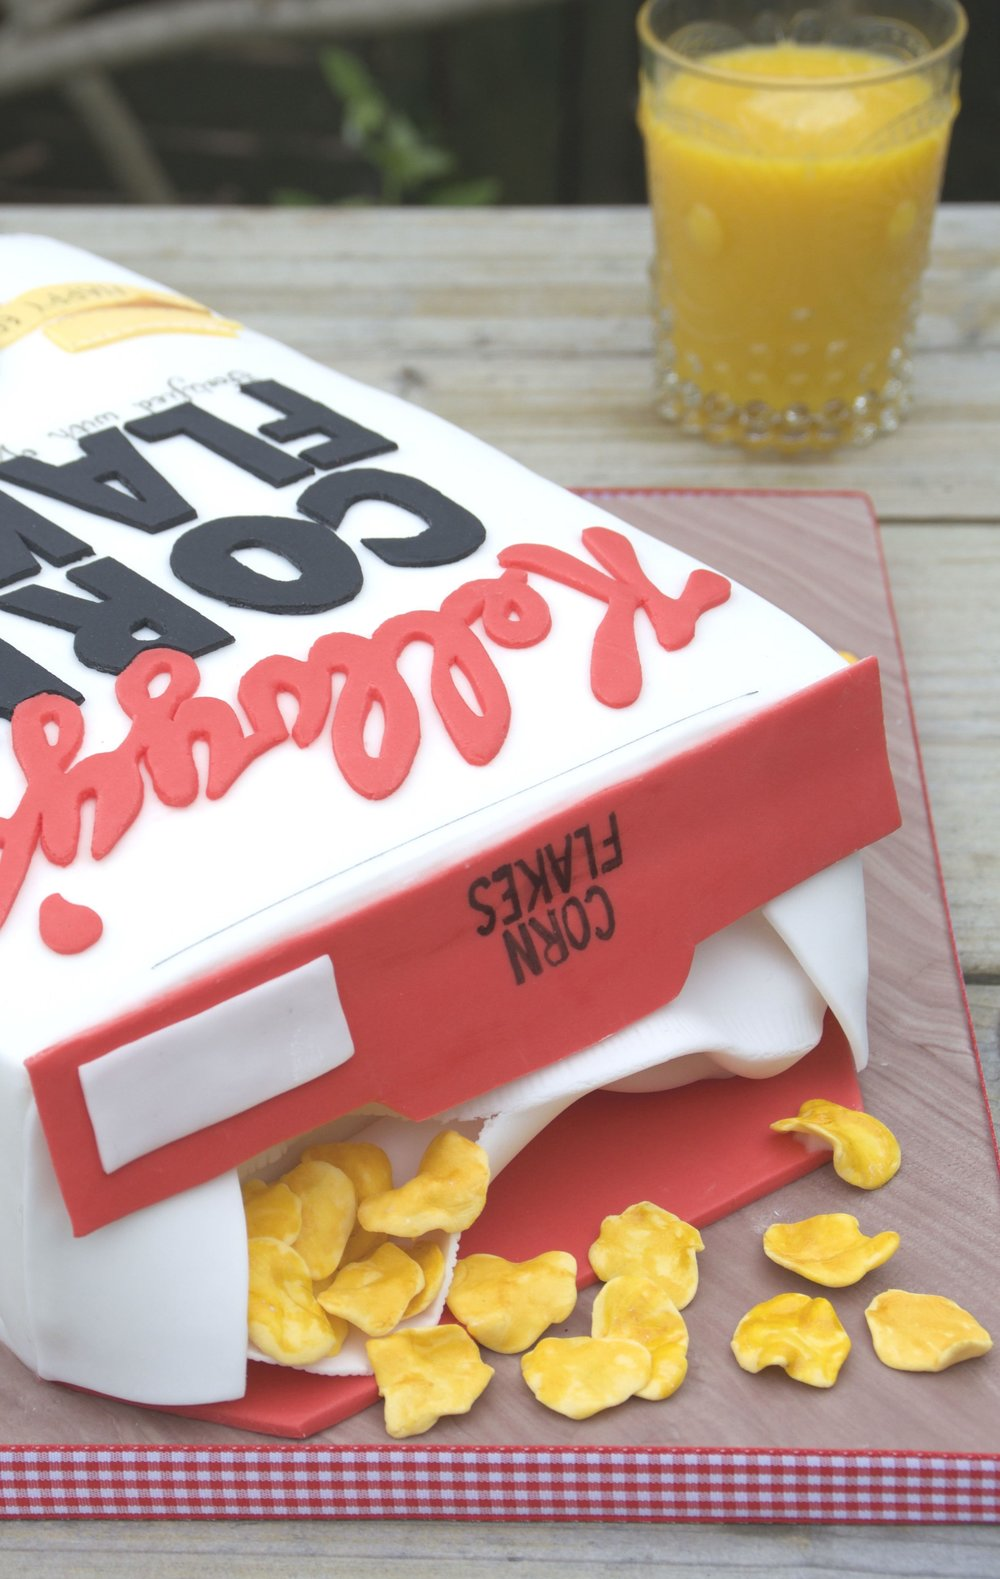 IMG_Cornflakes_box_celebration_cake.jpg